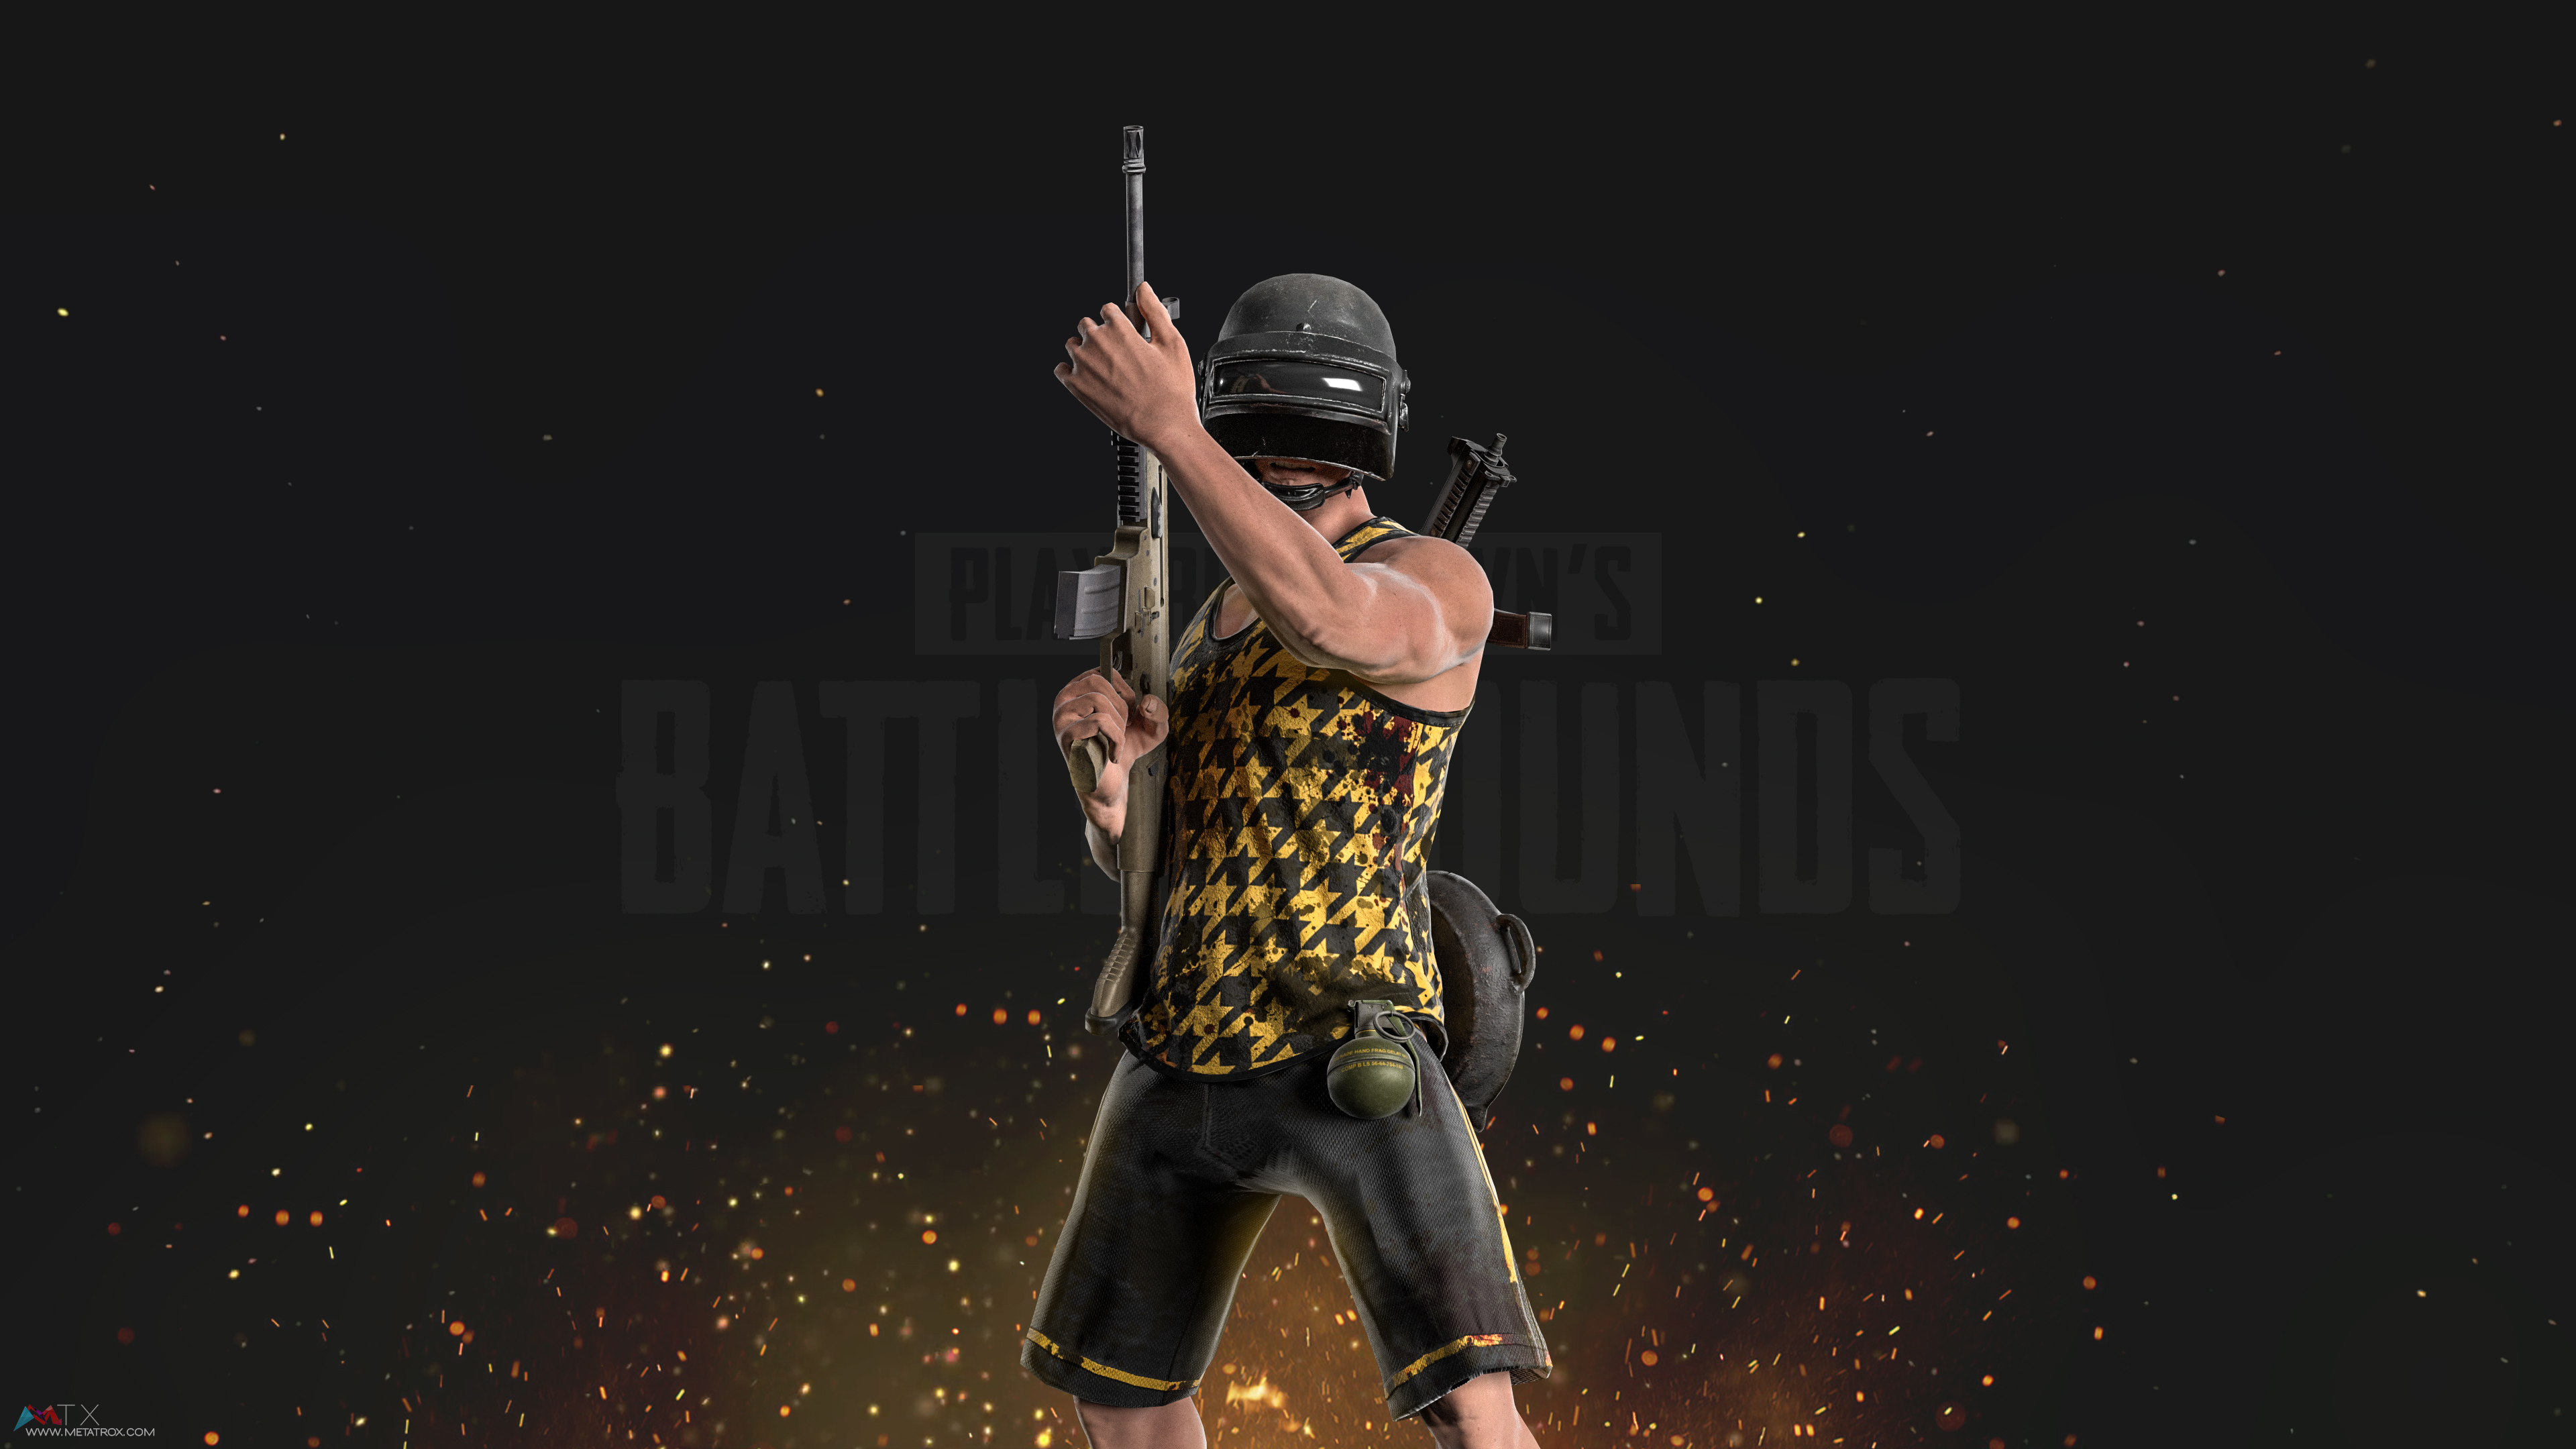 Pubg Gun Wallpaper 4k: Pubg, HD Games, 4k Wallpapers, Images, Backgrounds, Photos